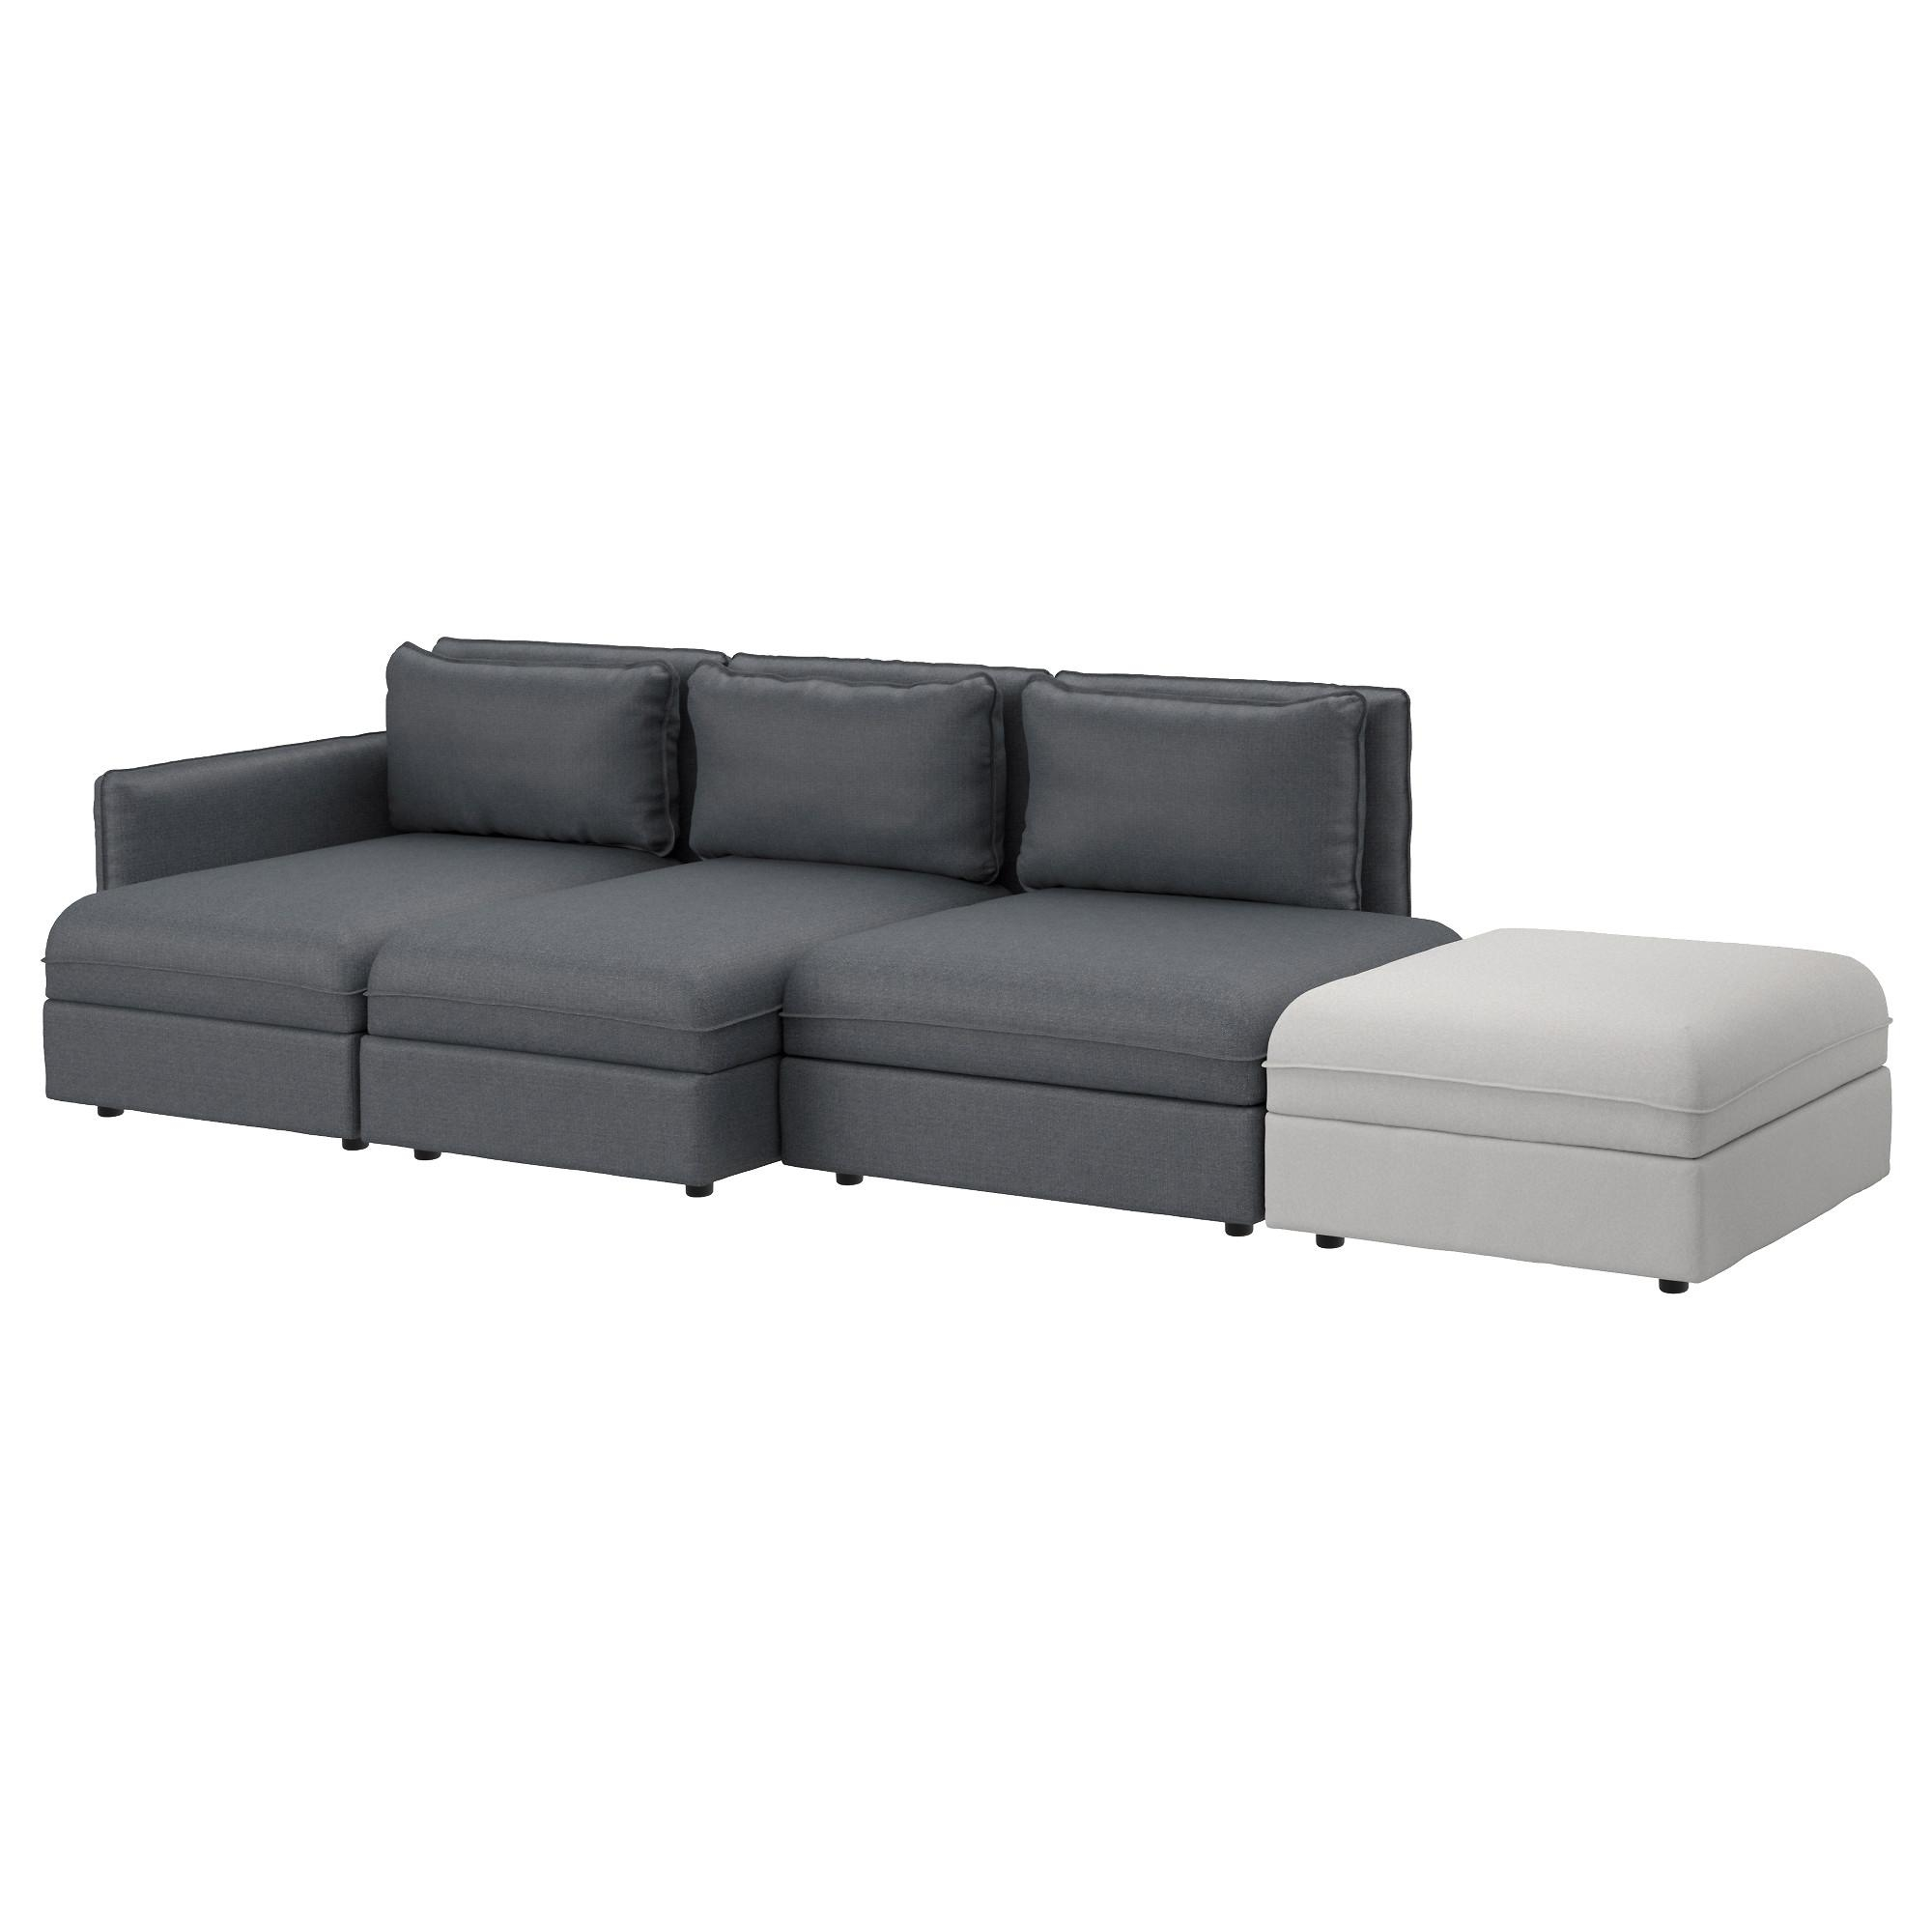 Modular Sofas & Sectionals – Ikea With Modular Sofas (View 20 of 20)